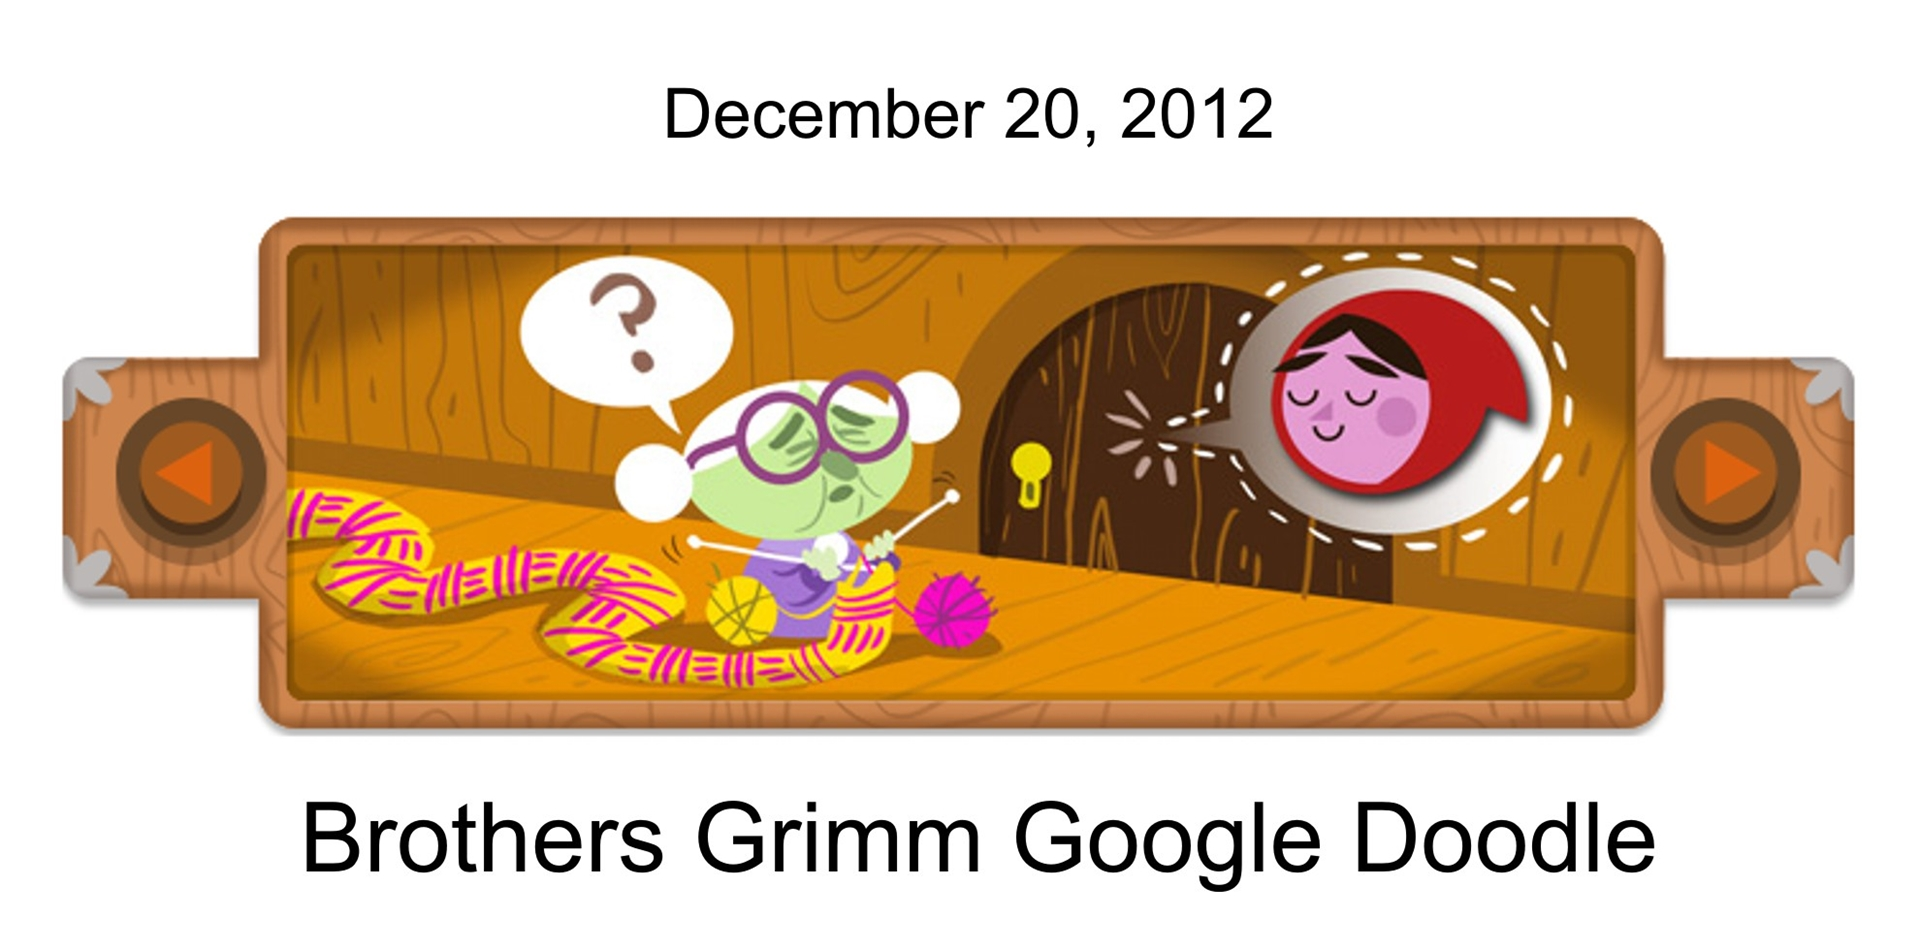 Brothers Grimm Google